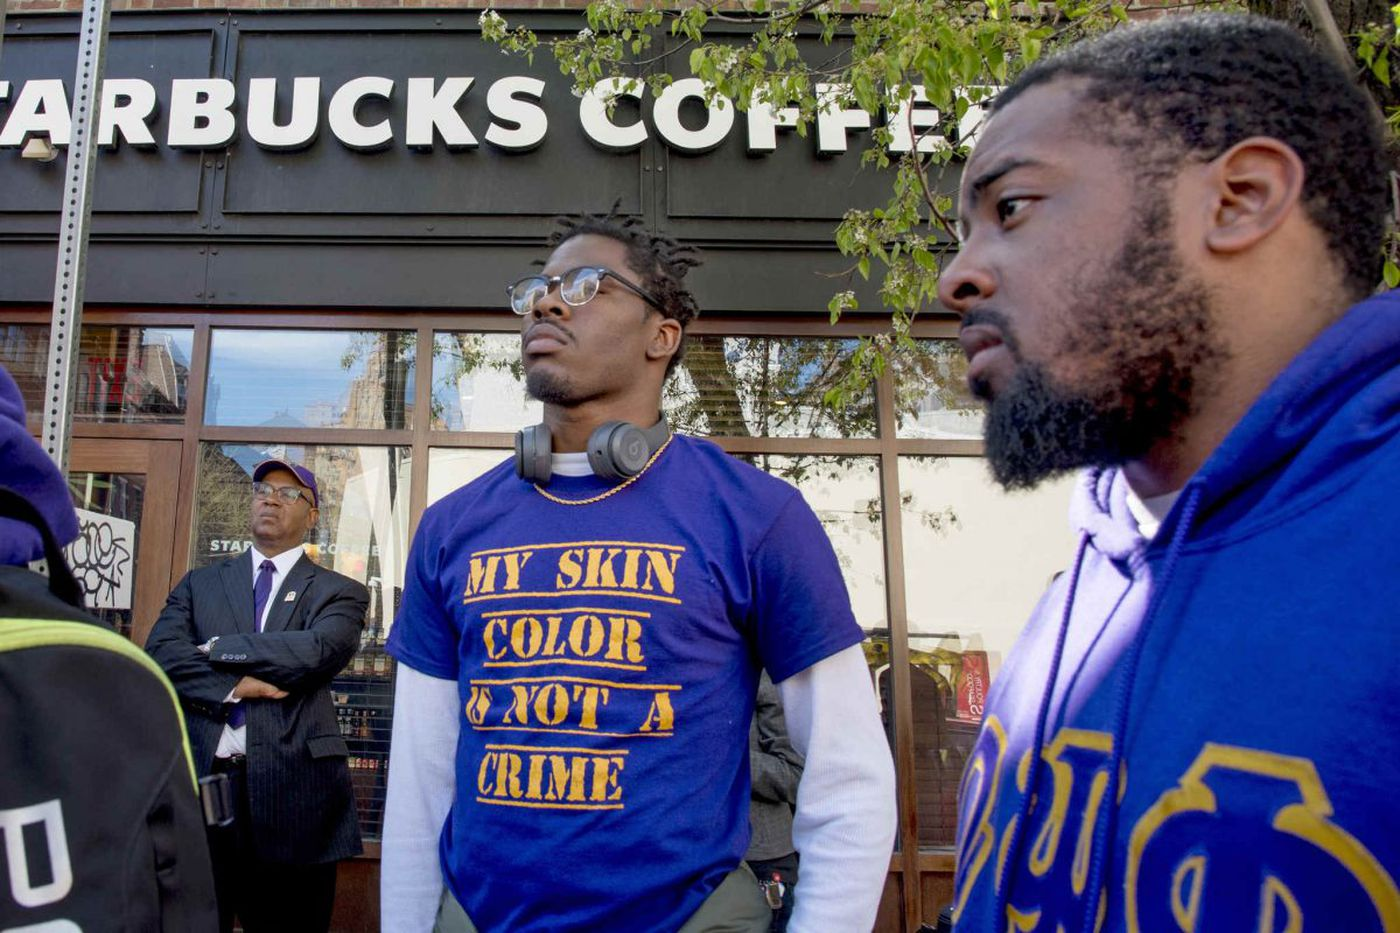 'My skin color is not a crime': Fraternity protests at Philly Starbucks